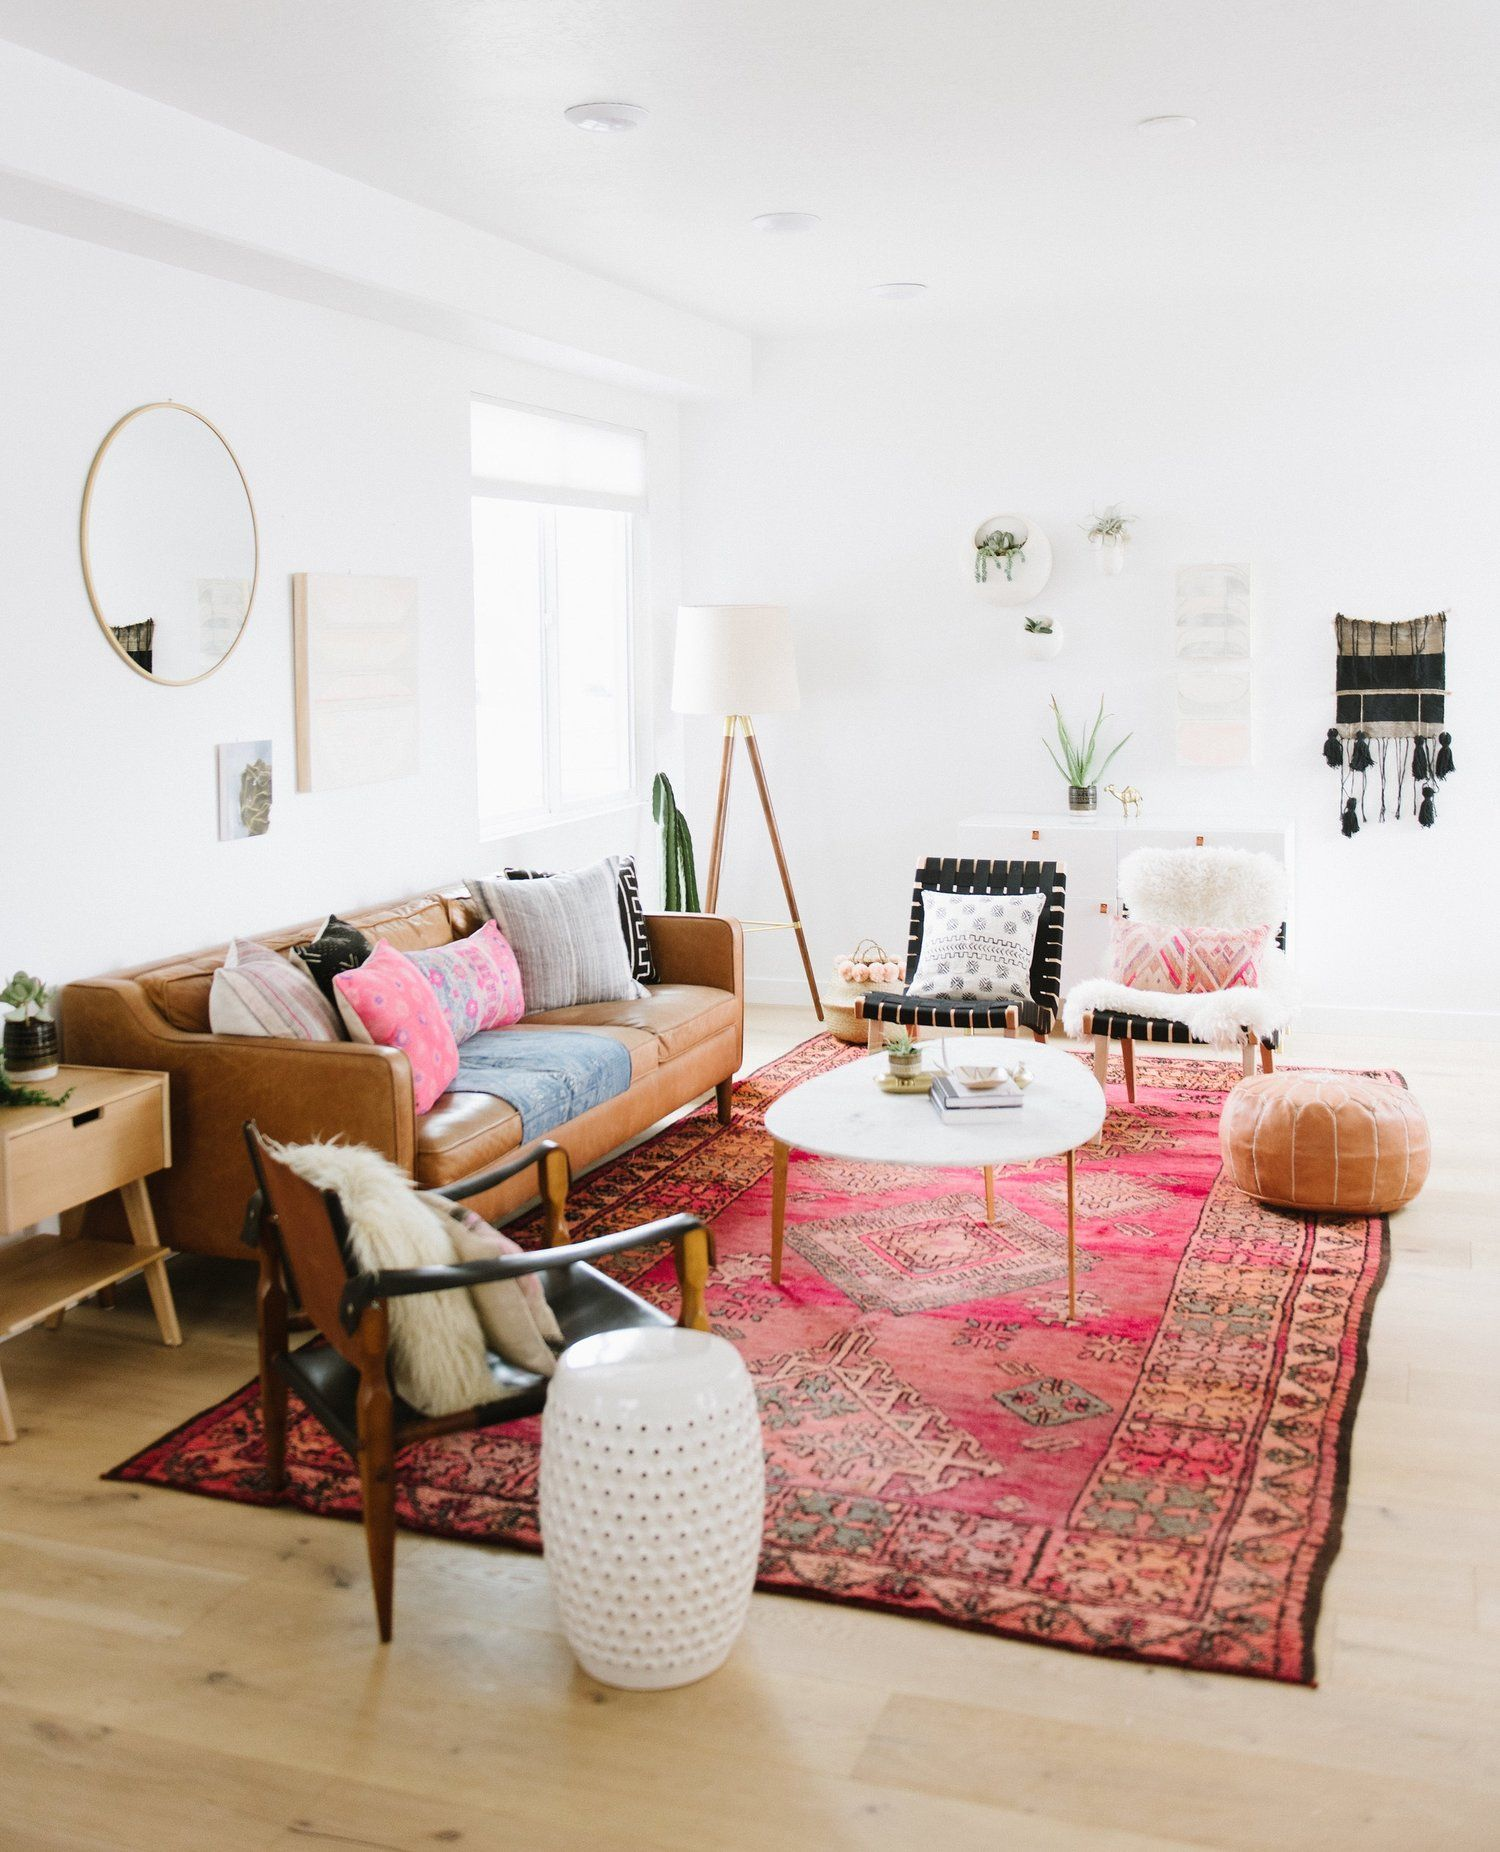 Pink oriental rug with tan leather sofa also best decor images on pinterest home ideas apartments and homes